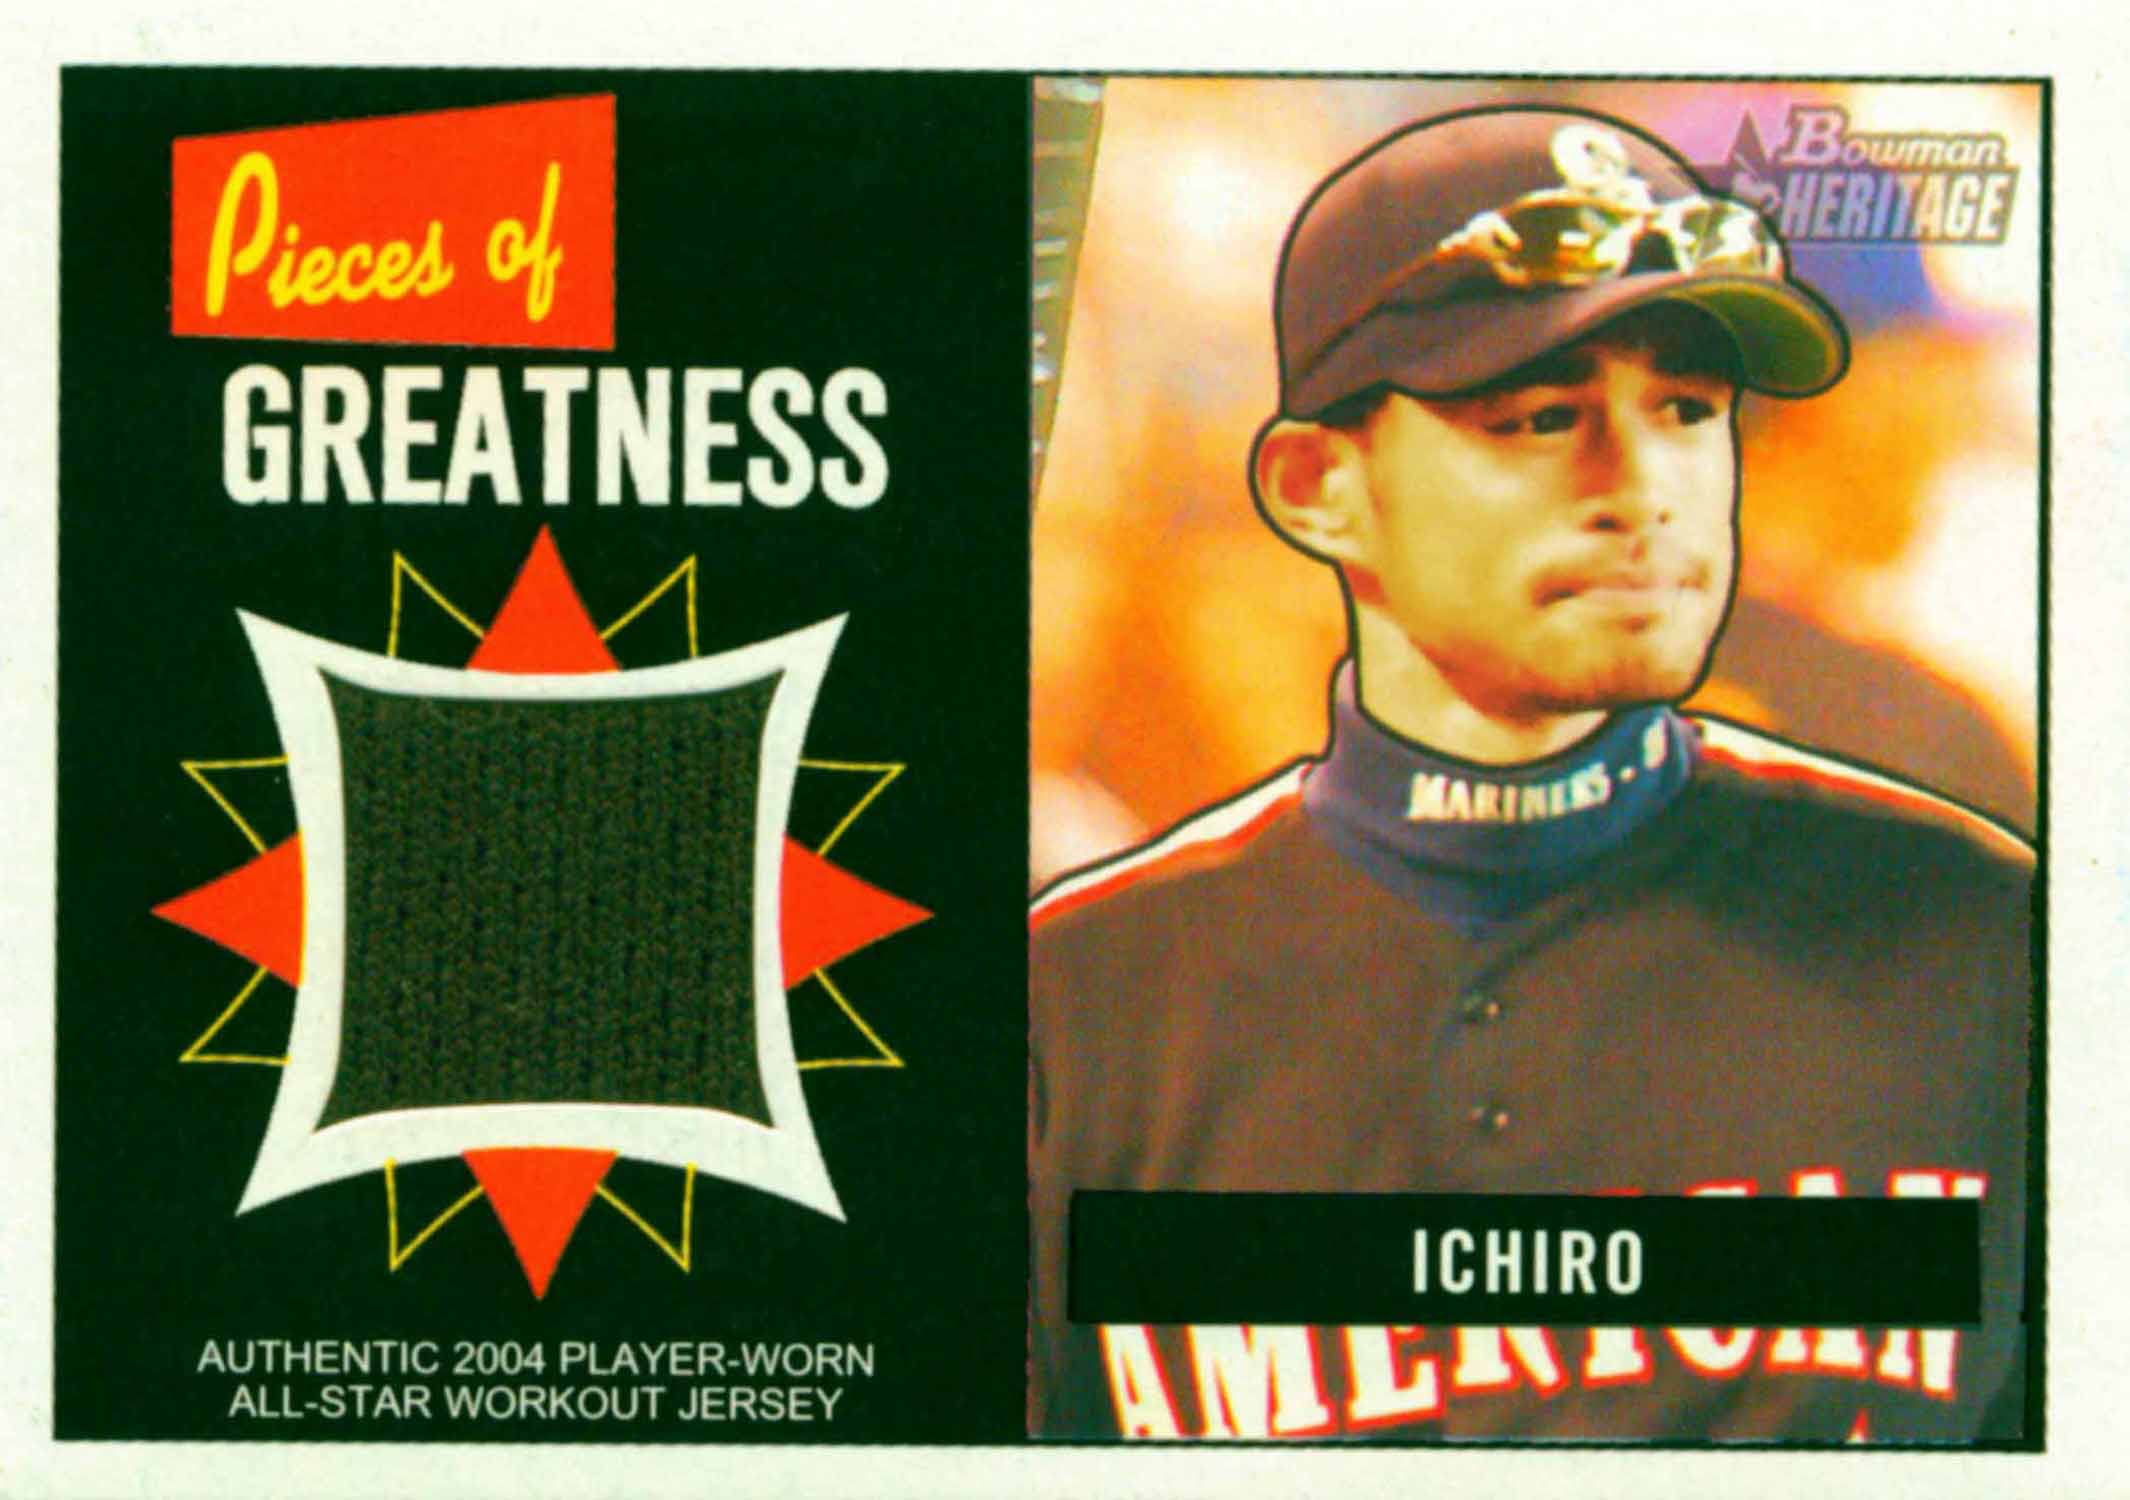 2005 Bowman Heritage Pieces of Greatness Relics Jersey